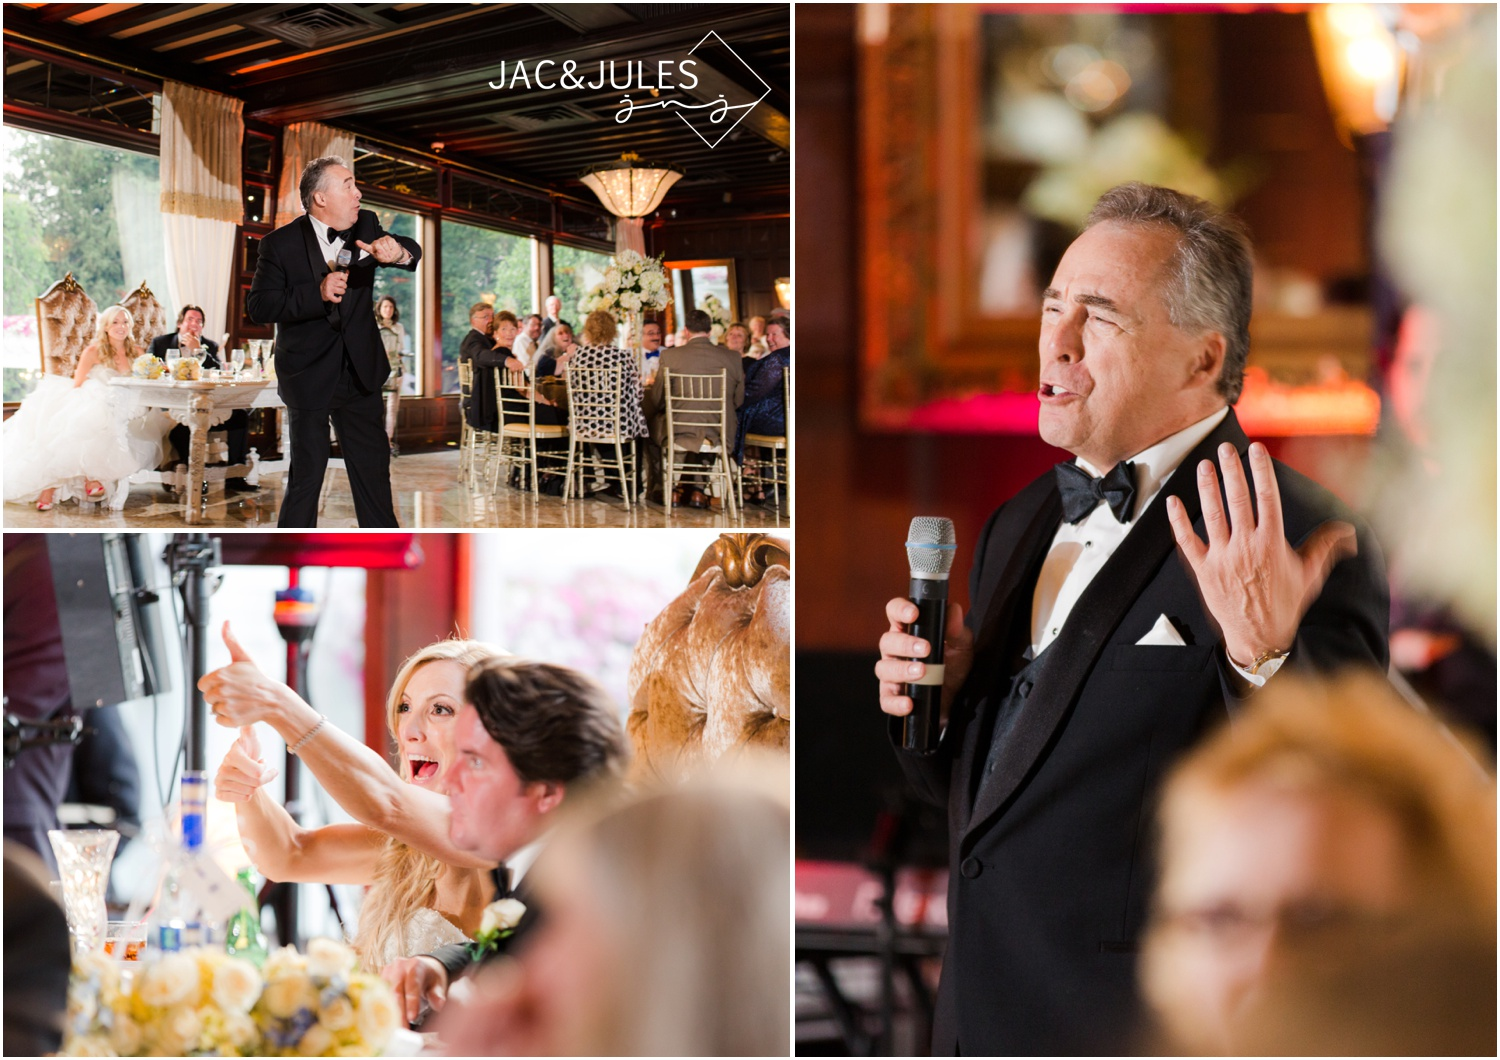 Dad's speech for his daughter's wedding at The Shadowbrook in Shrewsbury, NJ.